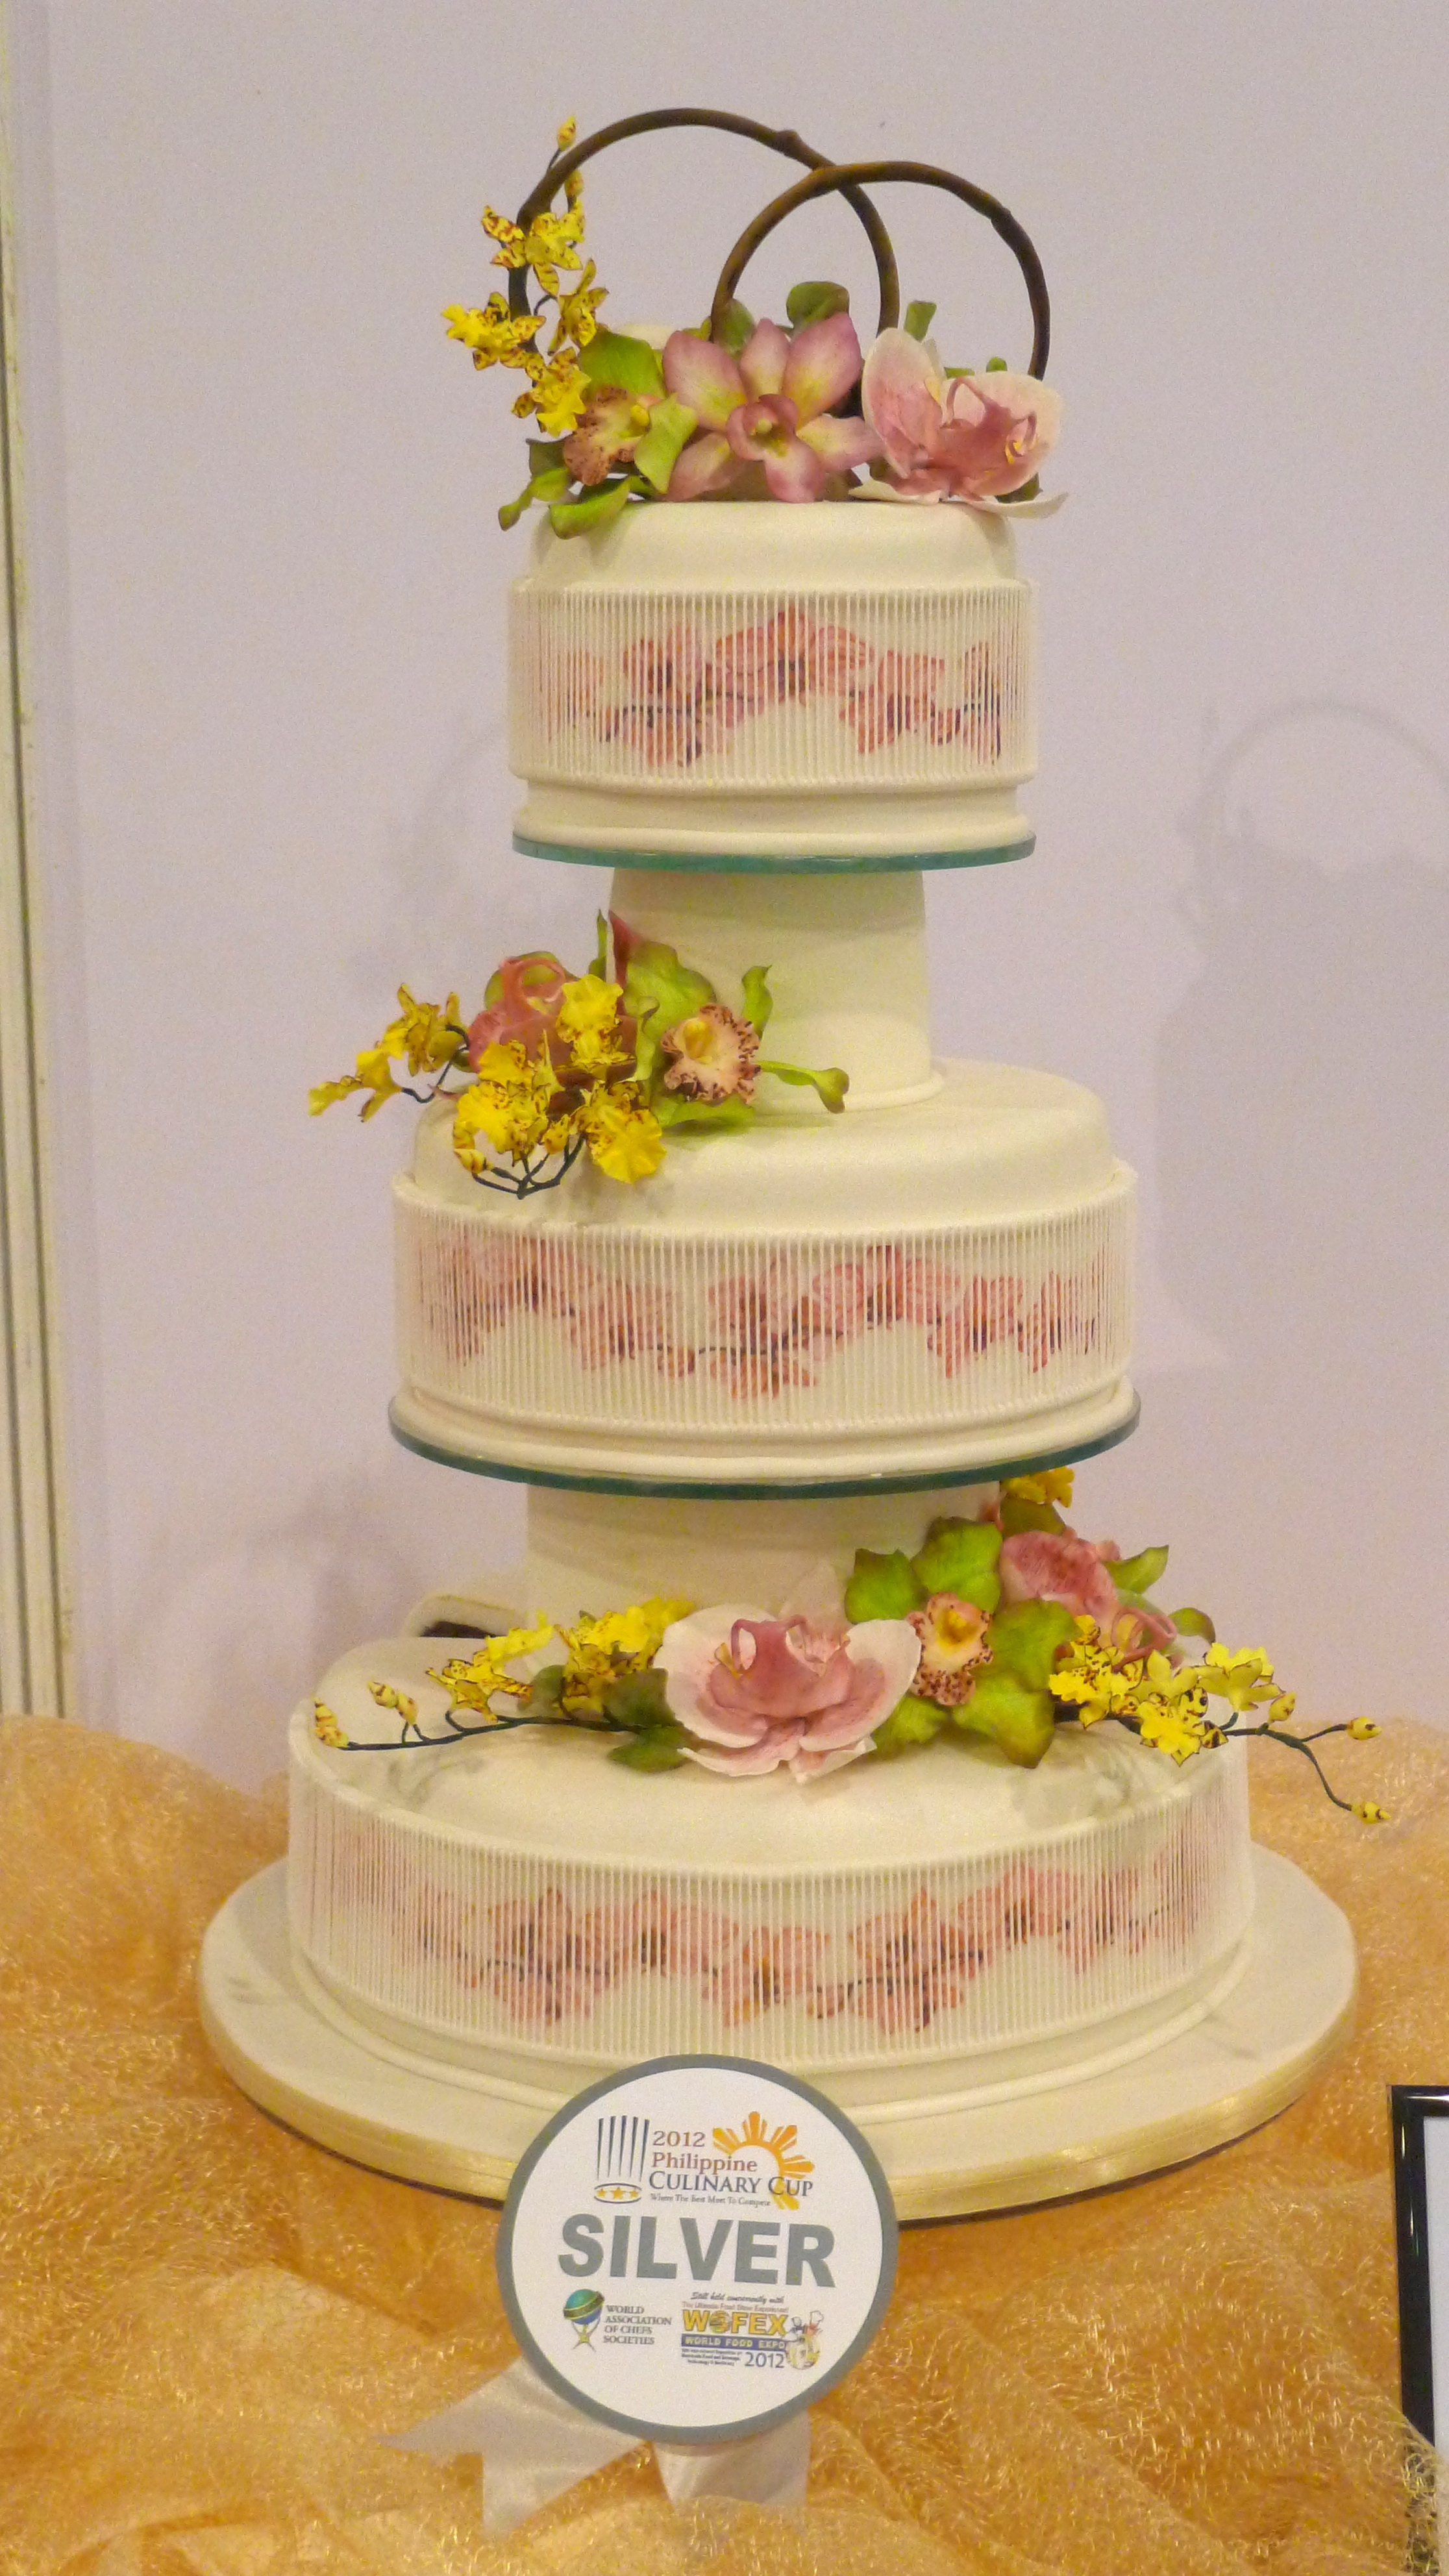 My 2011 Wedding Cake Entry For The 2011 Philippine Culinary Cup Wacs ...